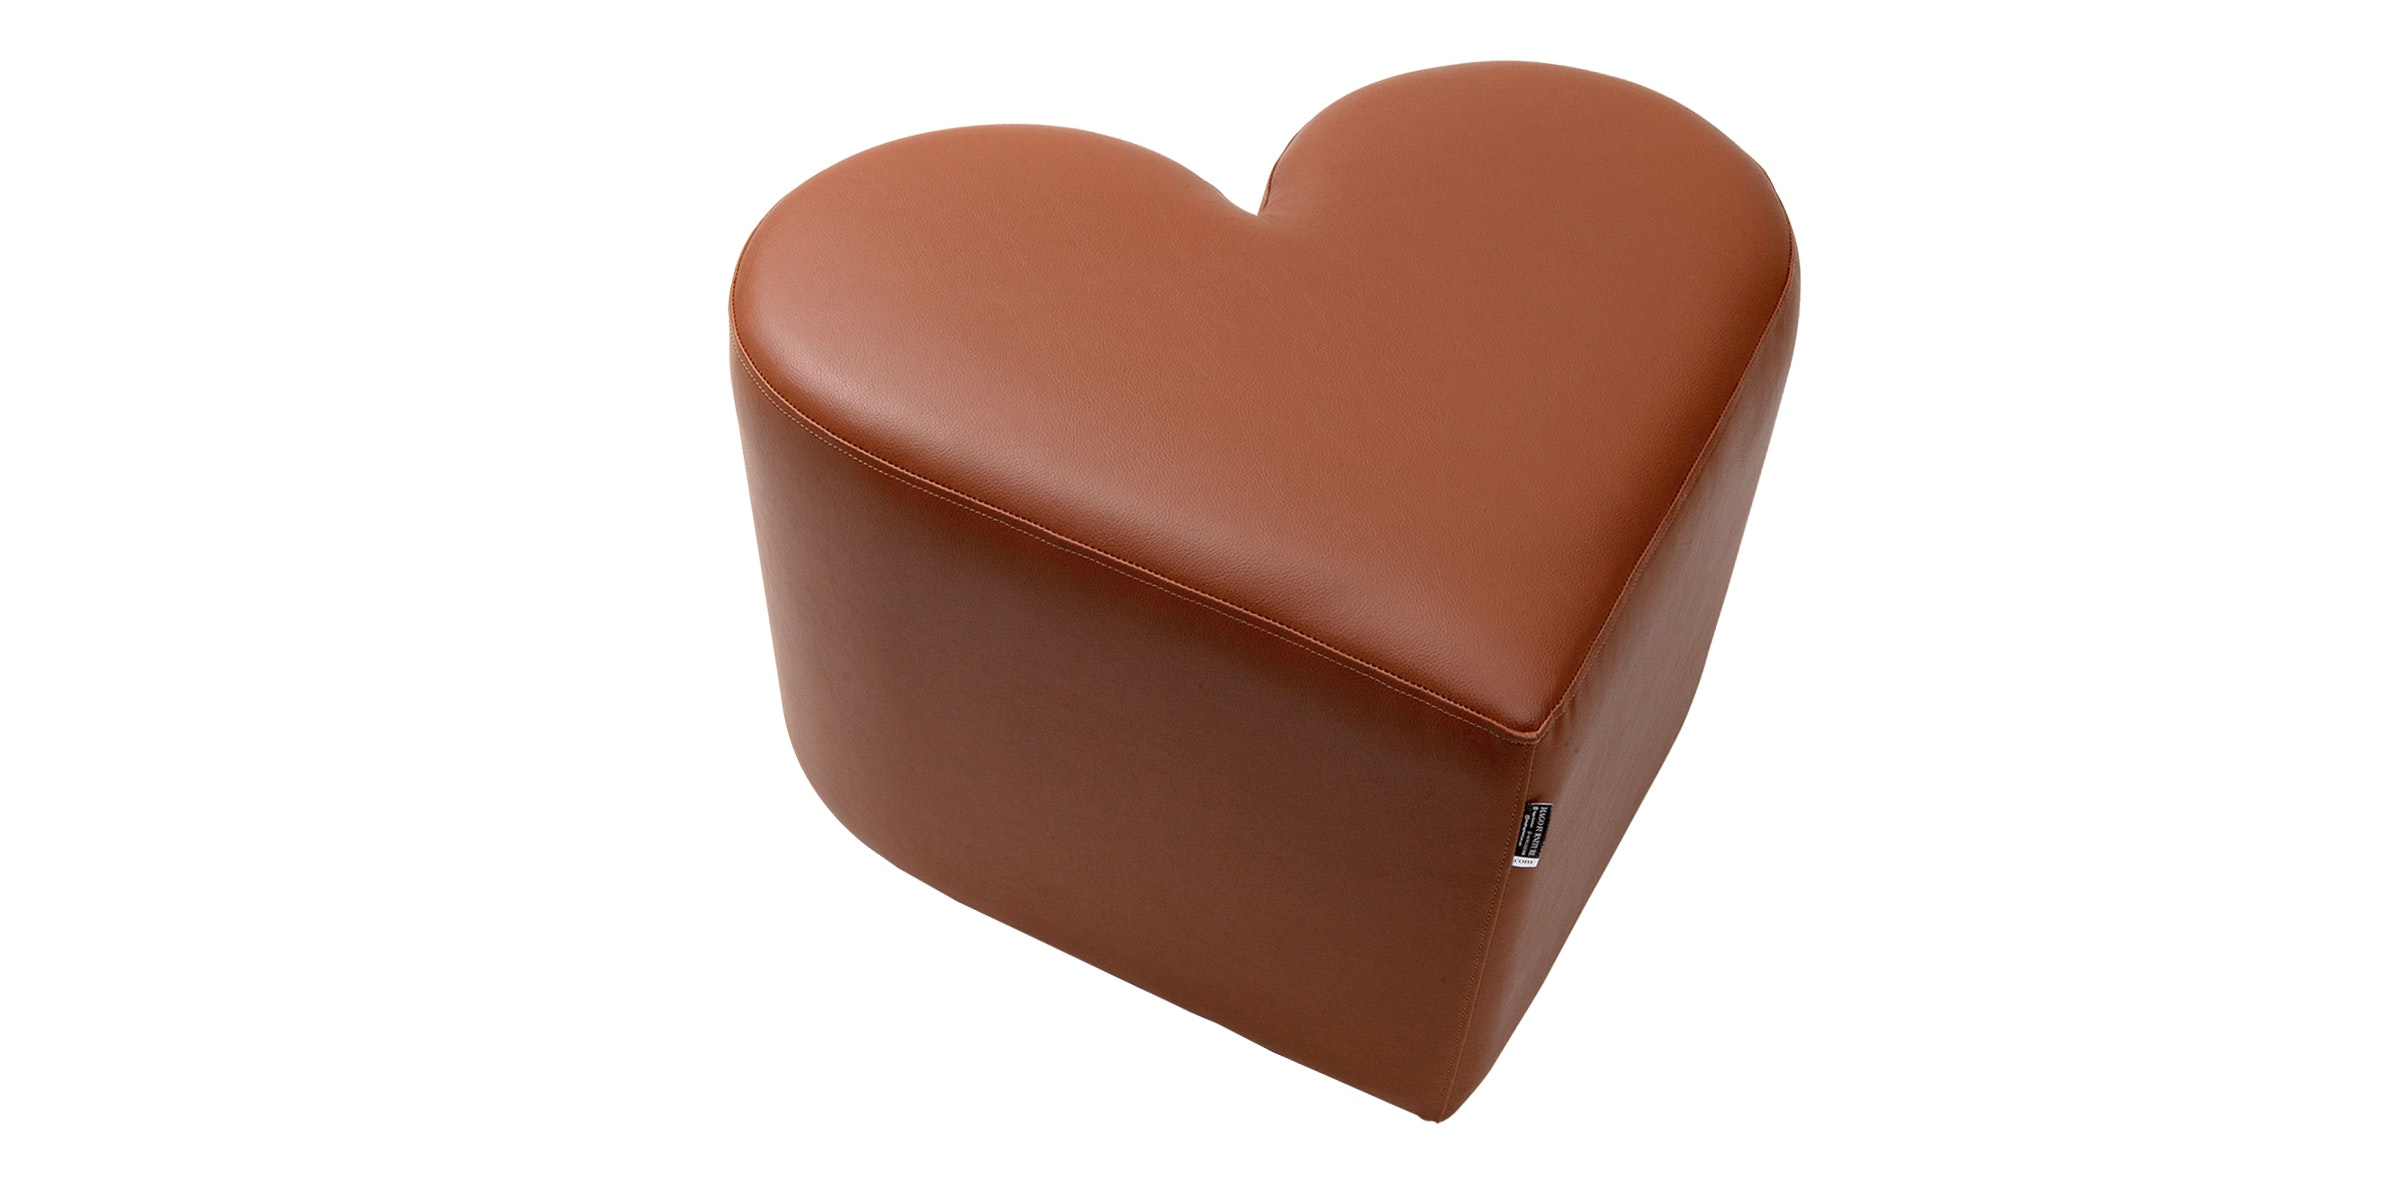 Hago Furniture Heart Unique Ottoman Cokelat Muda